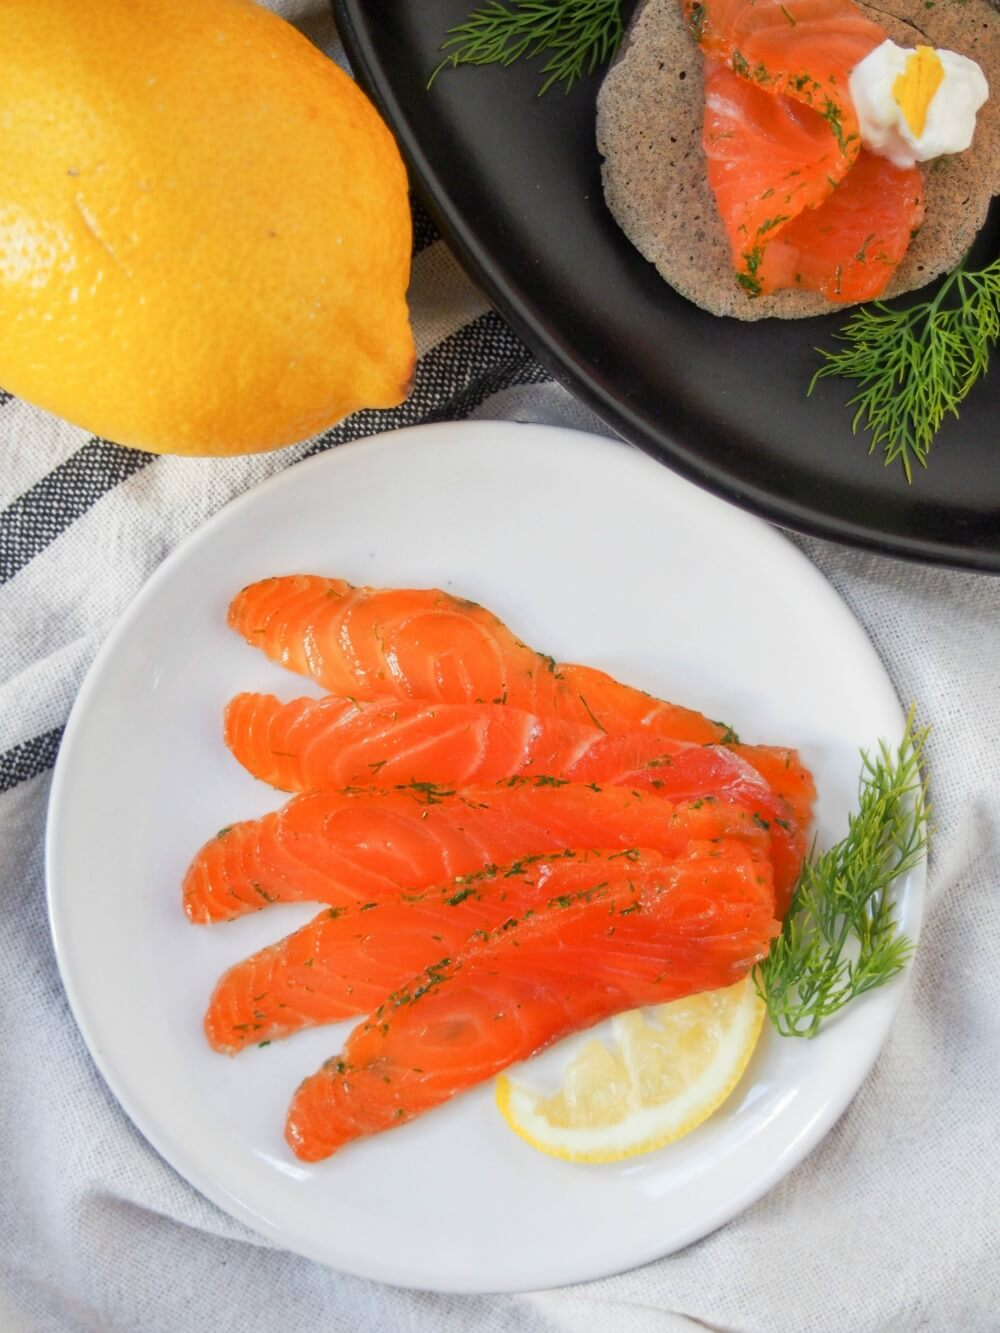 Salmon gravlax tastes similar to smoked salmon, but without the pricetag. Easy to make, all you need is a little planning, then enjoy the delicate, lightly herbed flavor of this home-cured salmon. Great as an appetizer and more.